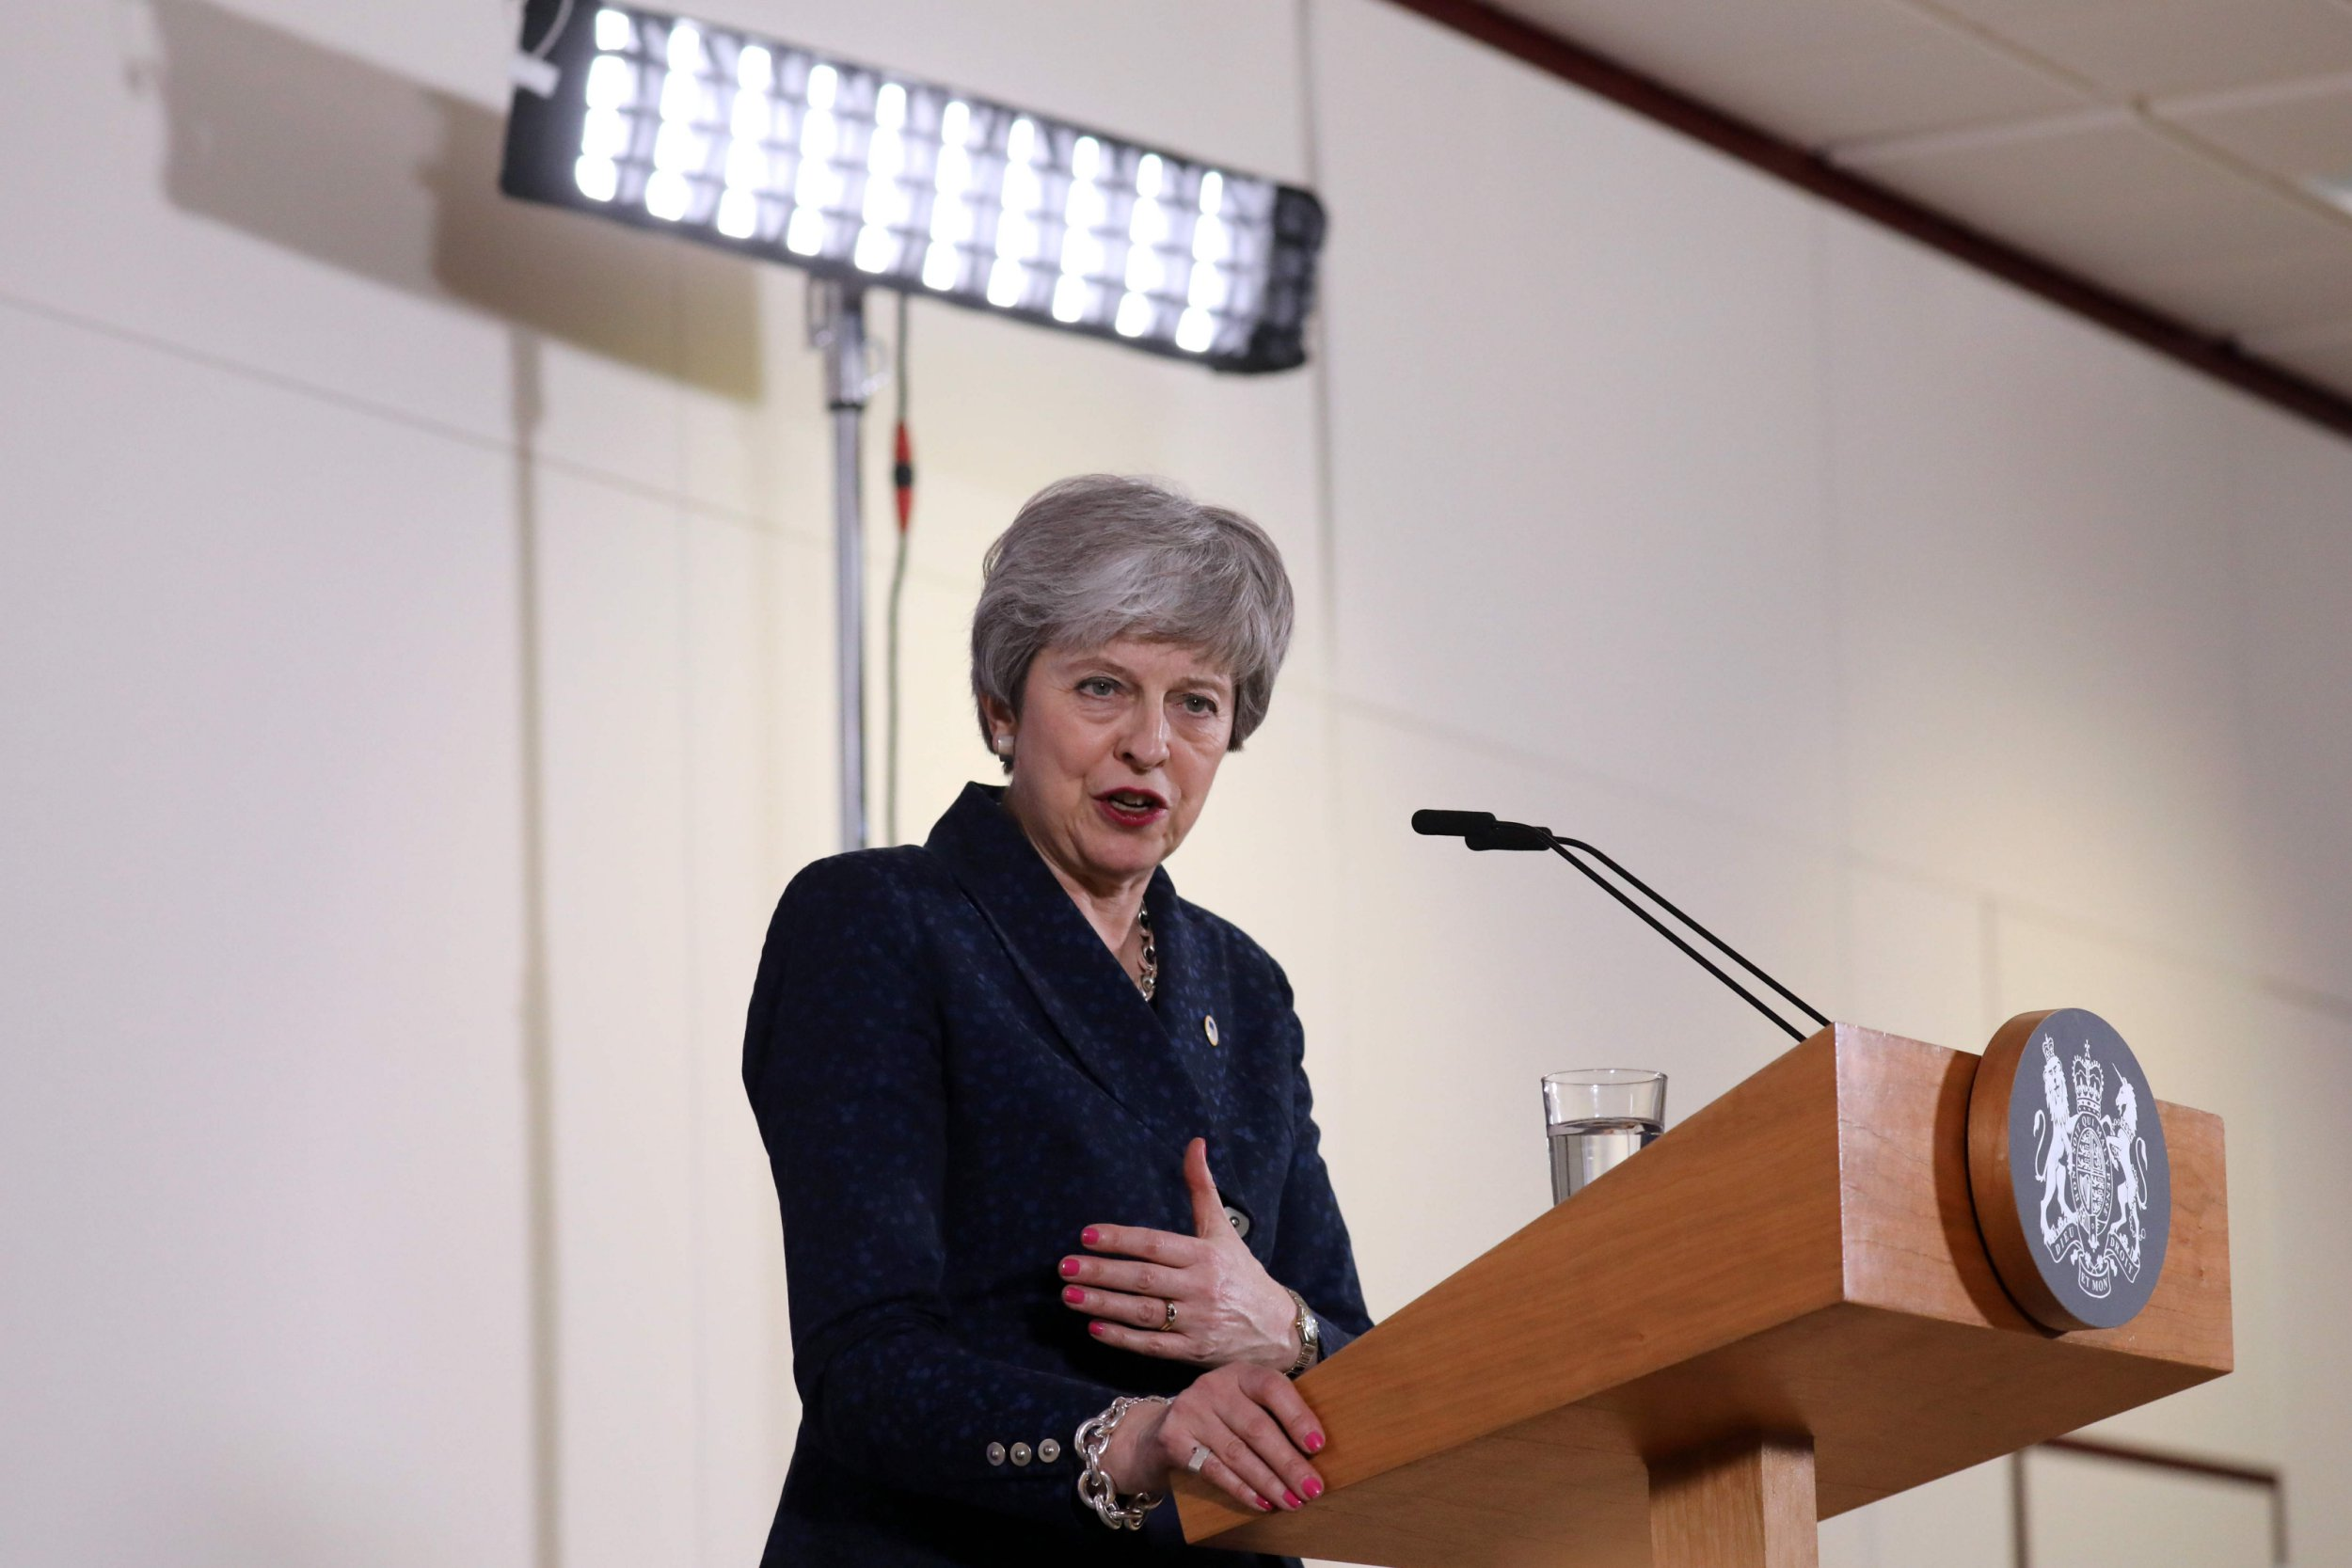 British Prime Minister Theresa May holds a press conference on March 22, 2019, at the end of the first day of an EU summit focused on Brexit, in Brussels. - European Union leaders meet in Brussels on March 21 and 22, for the last EU summit before Britain's scheduled exit of the union. (Photo by Ludovic MARIN / AFP)LUDOVIC MARIN/AFP/Getty Images